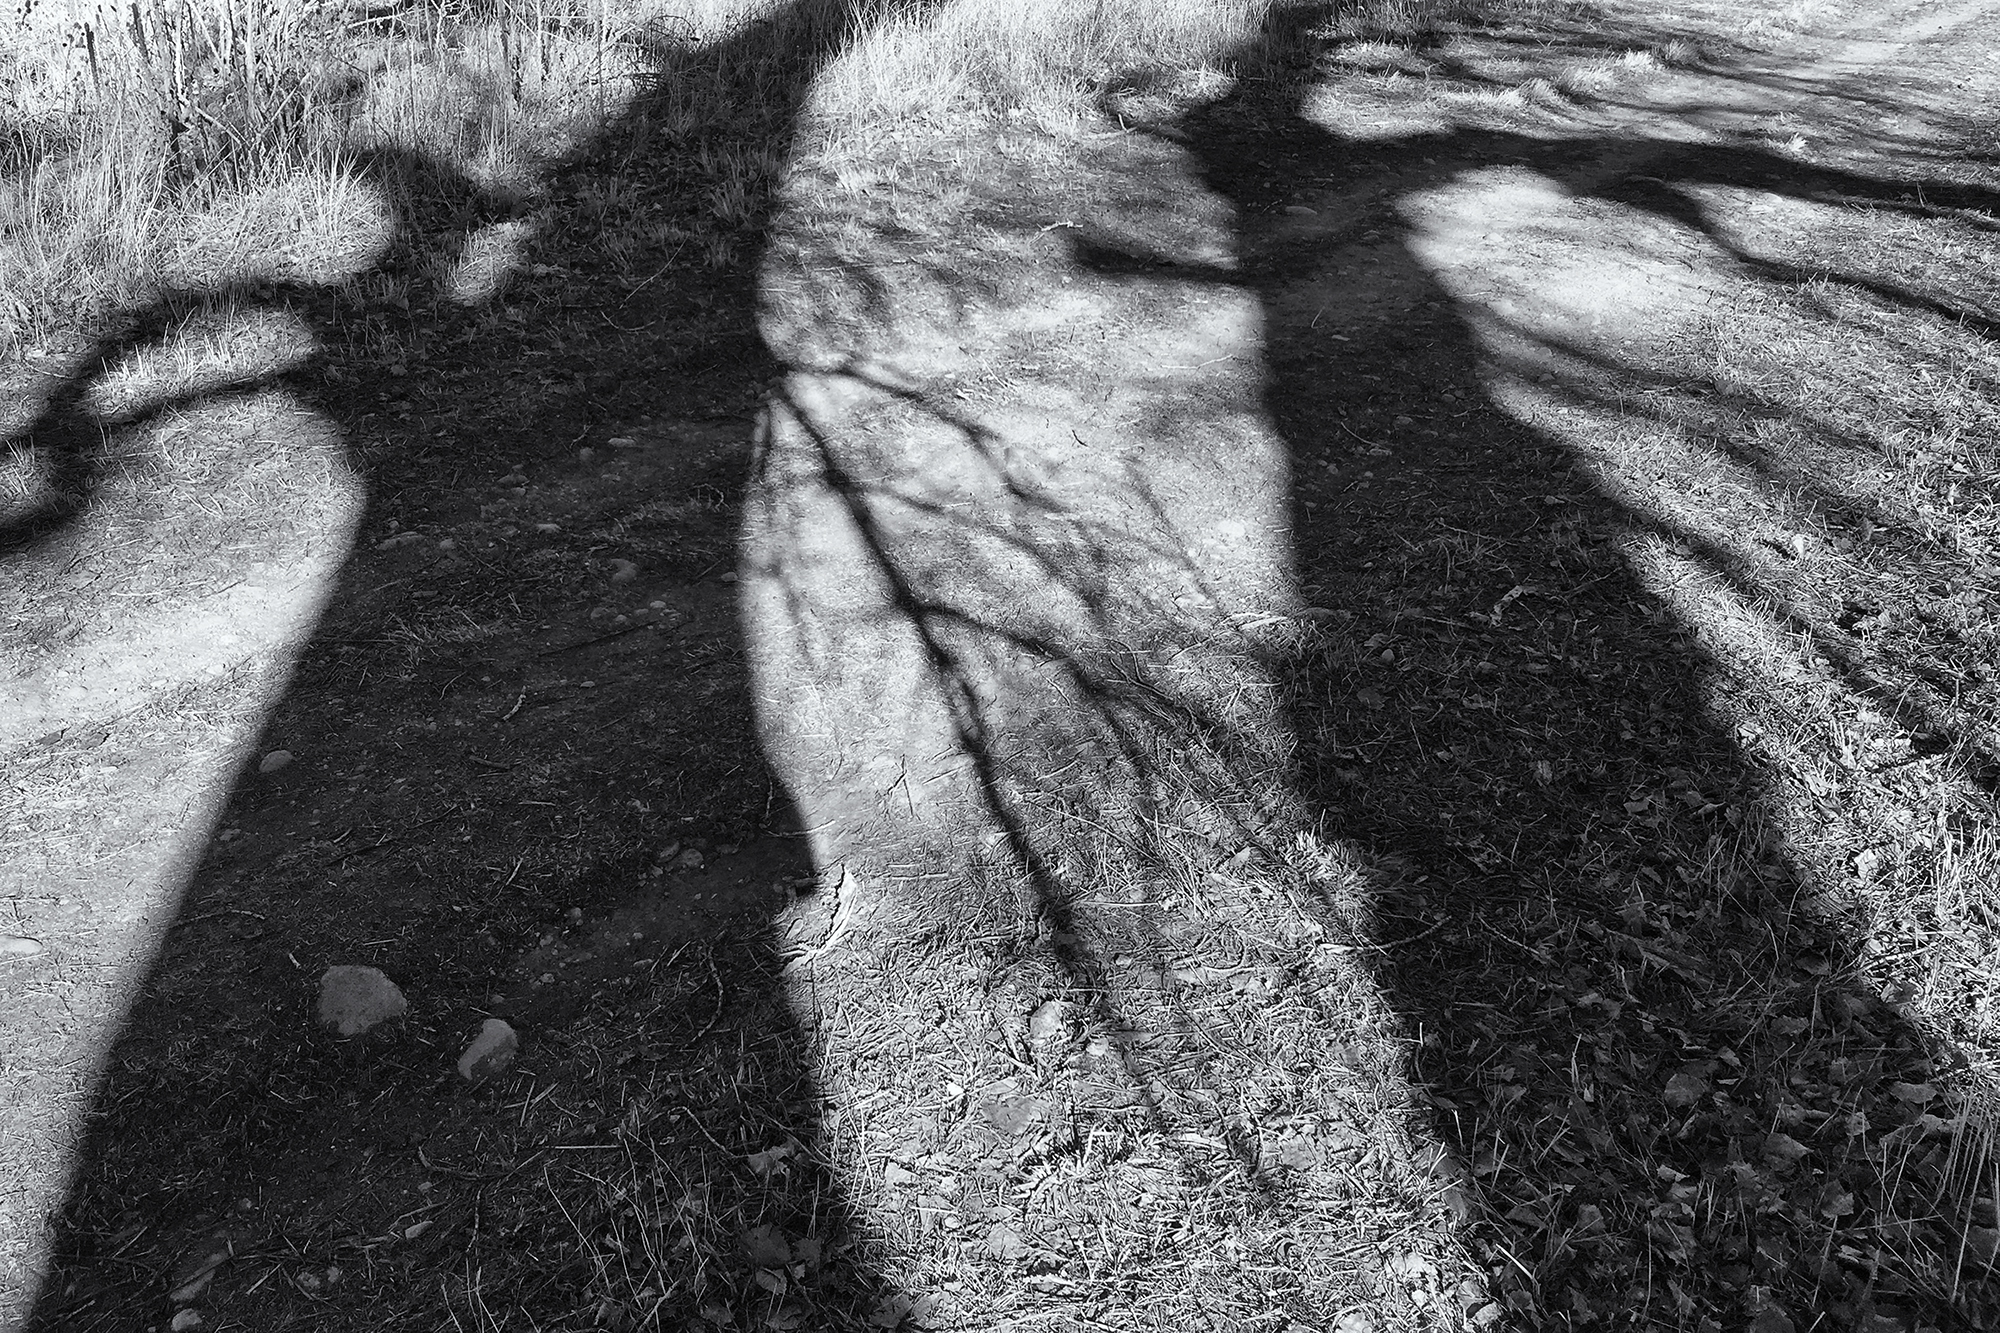 Cottonwood Shadows. Sawhill Ponds, Colorado, 2016